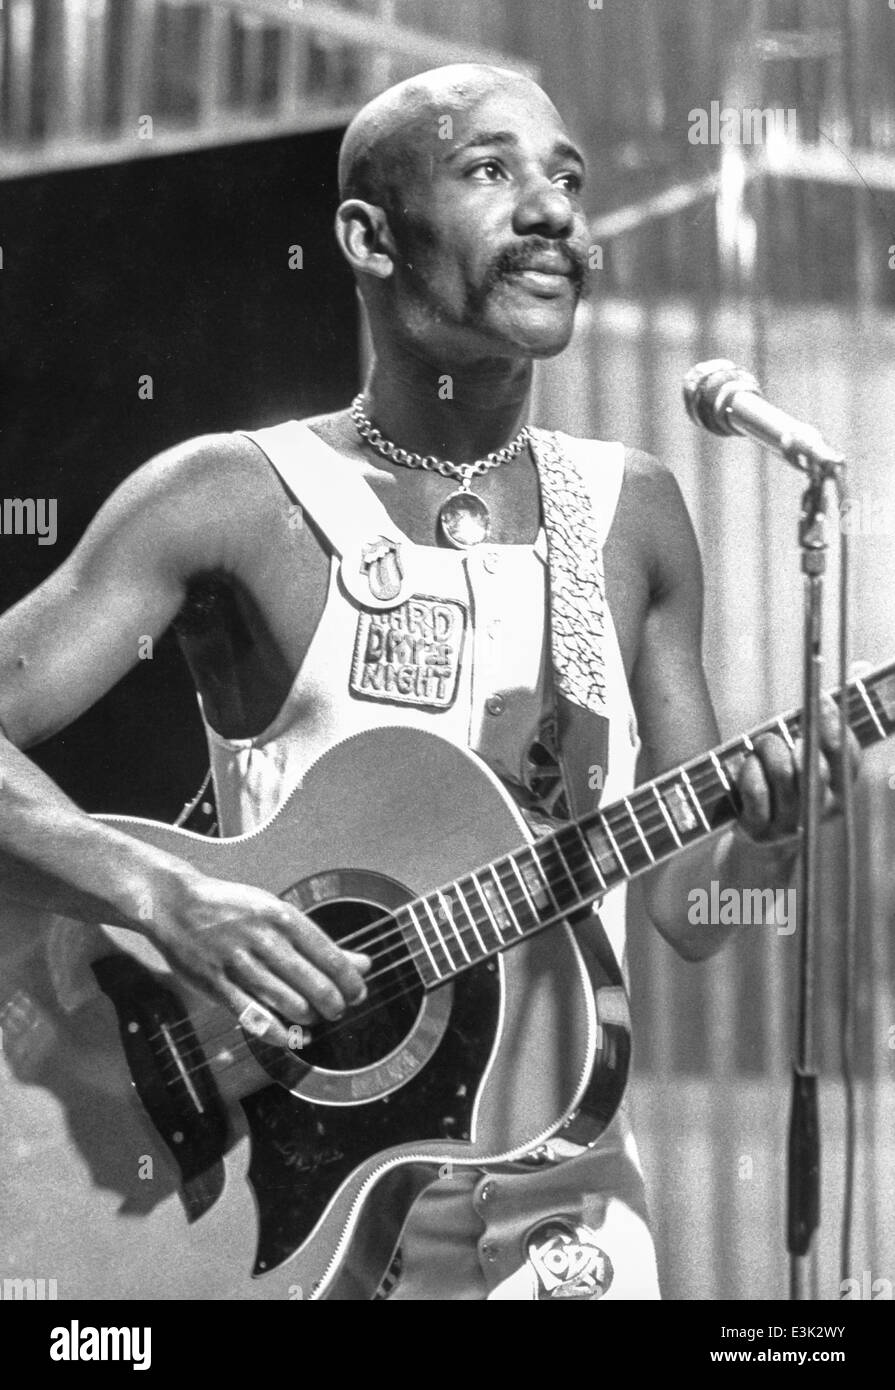 isaac hayes,top of the pops,bbc tv,1976 Stock Photo